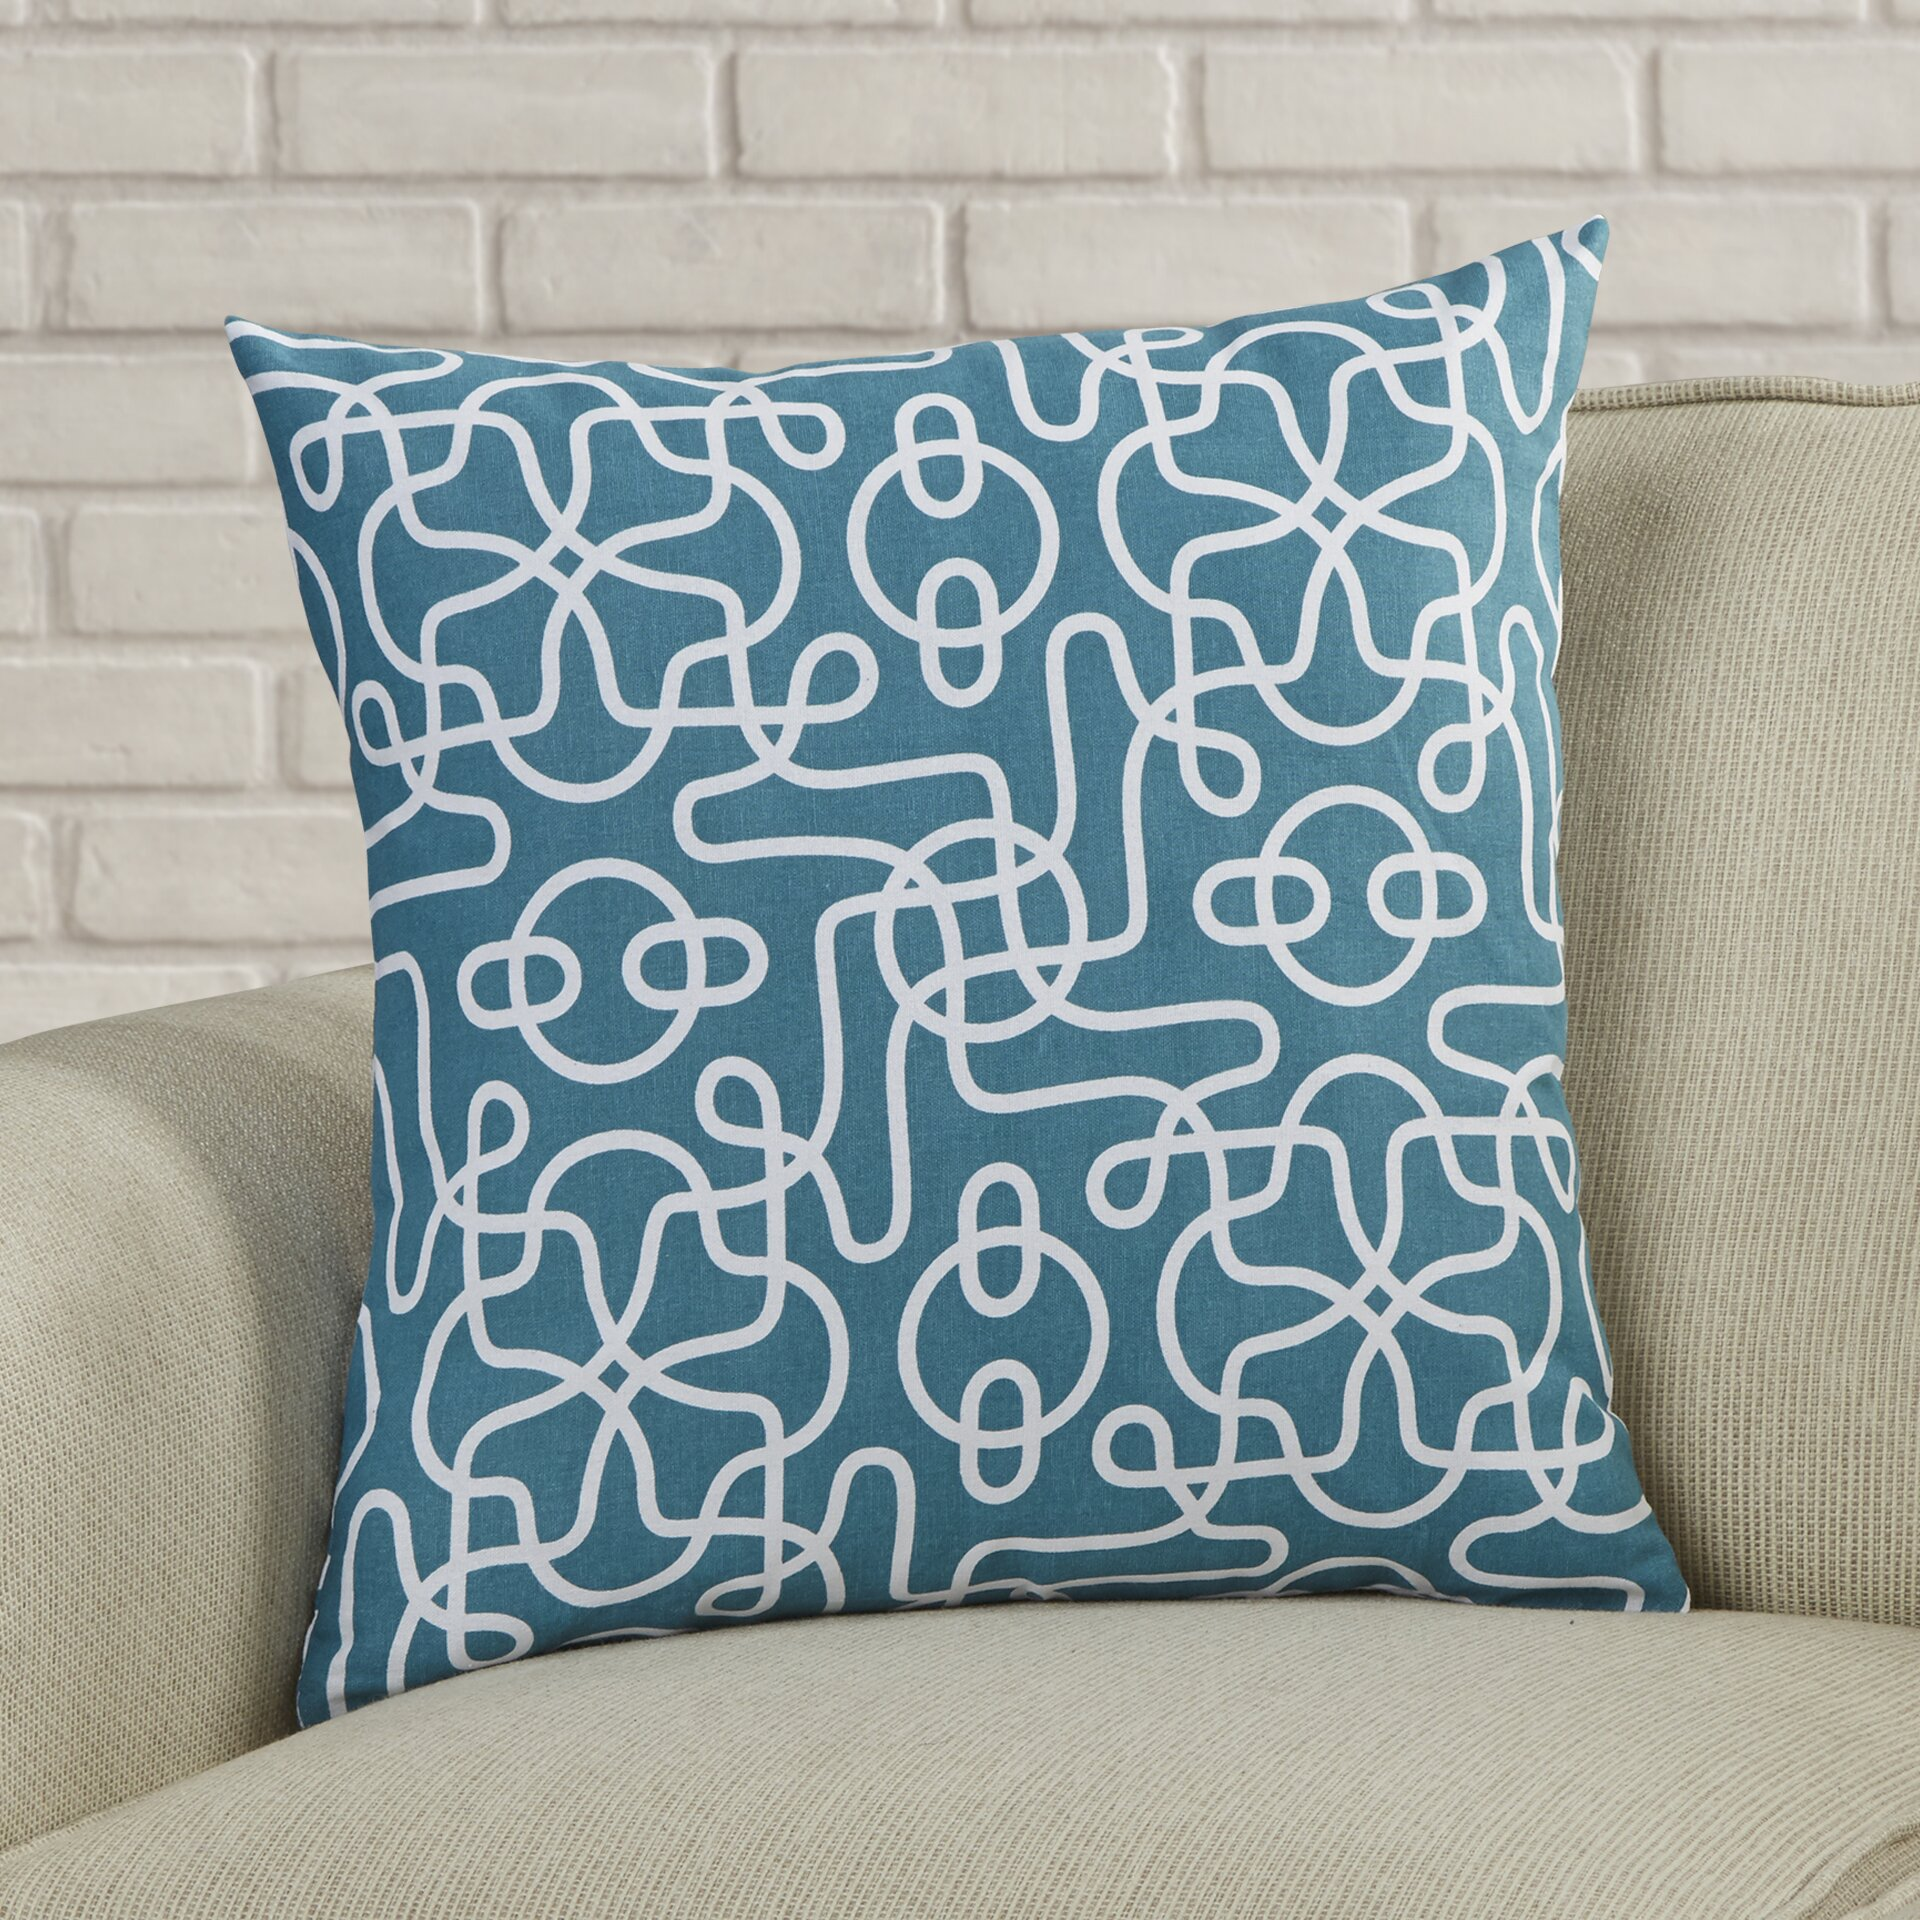 Throw Pillow Gallery : Varick Gallery Peterson Reversible Cotton Throw Pillow & Reviews Wayfair